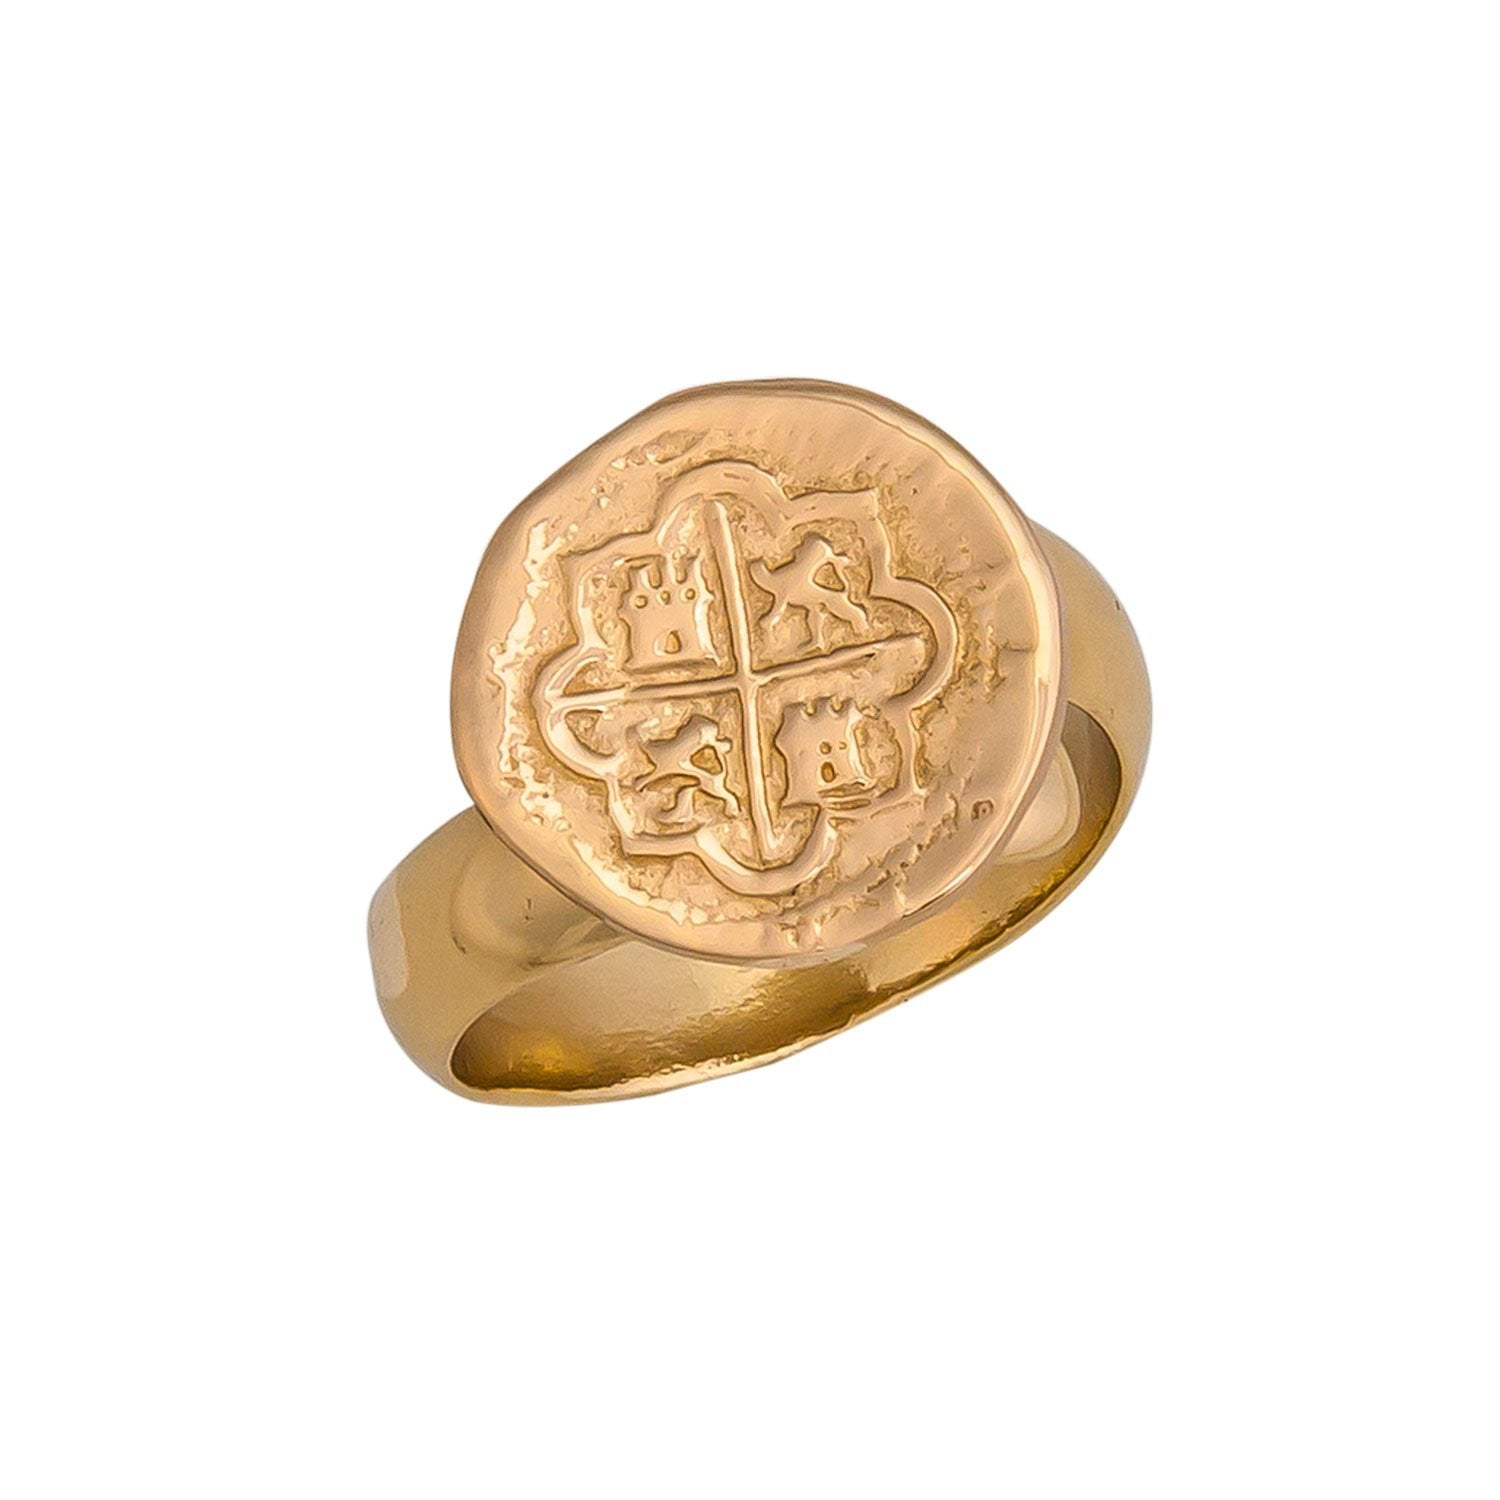 Alchemia Replica Spanish Coin Adjustable Ring | Charles Albert Jewelry